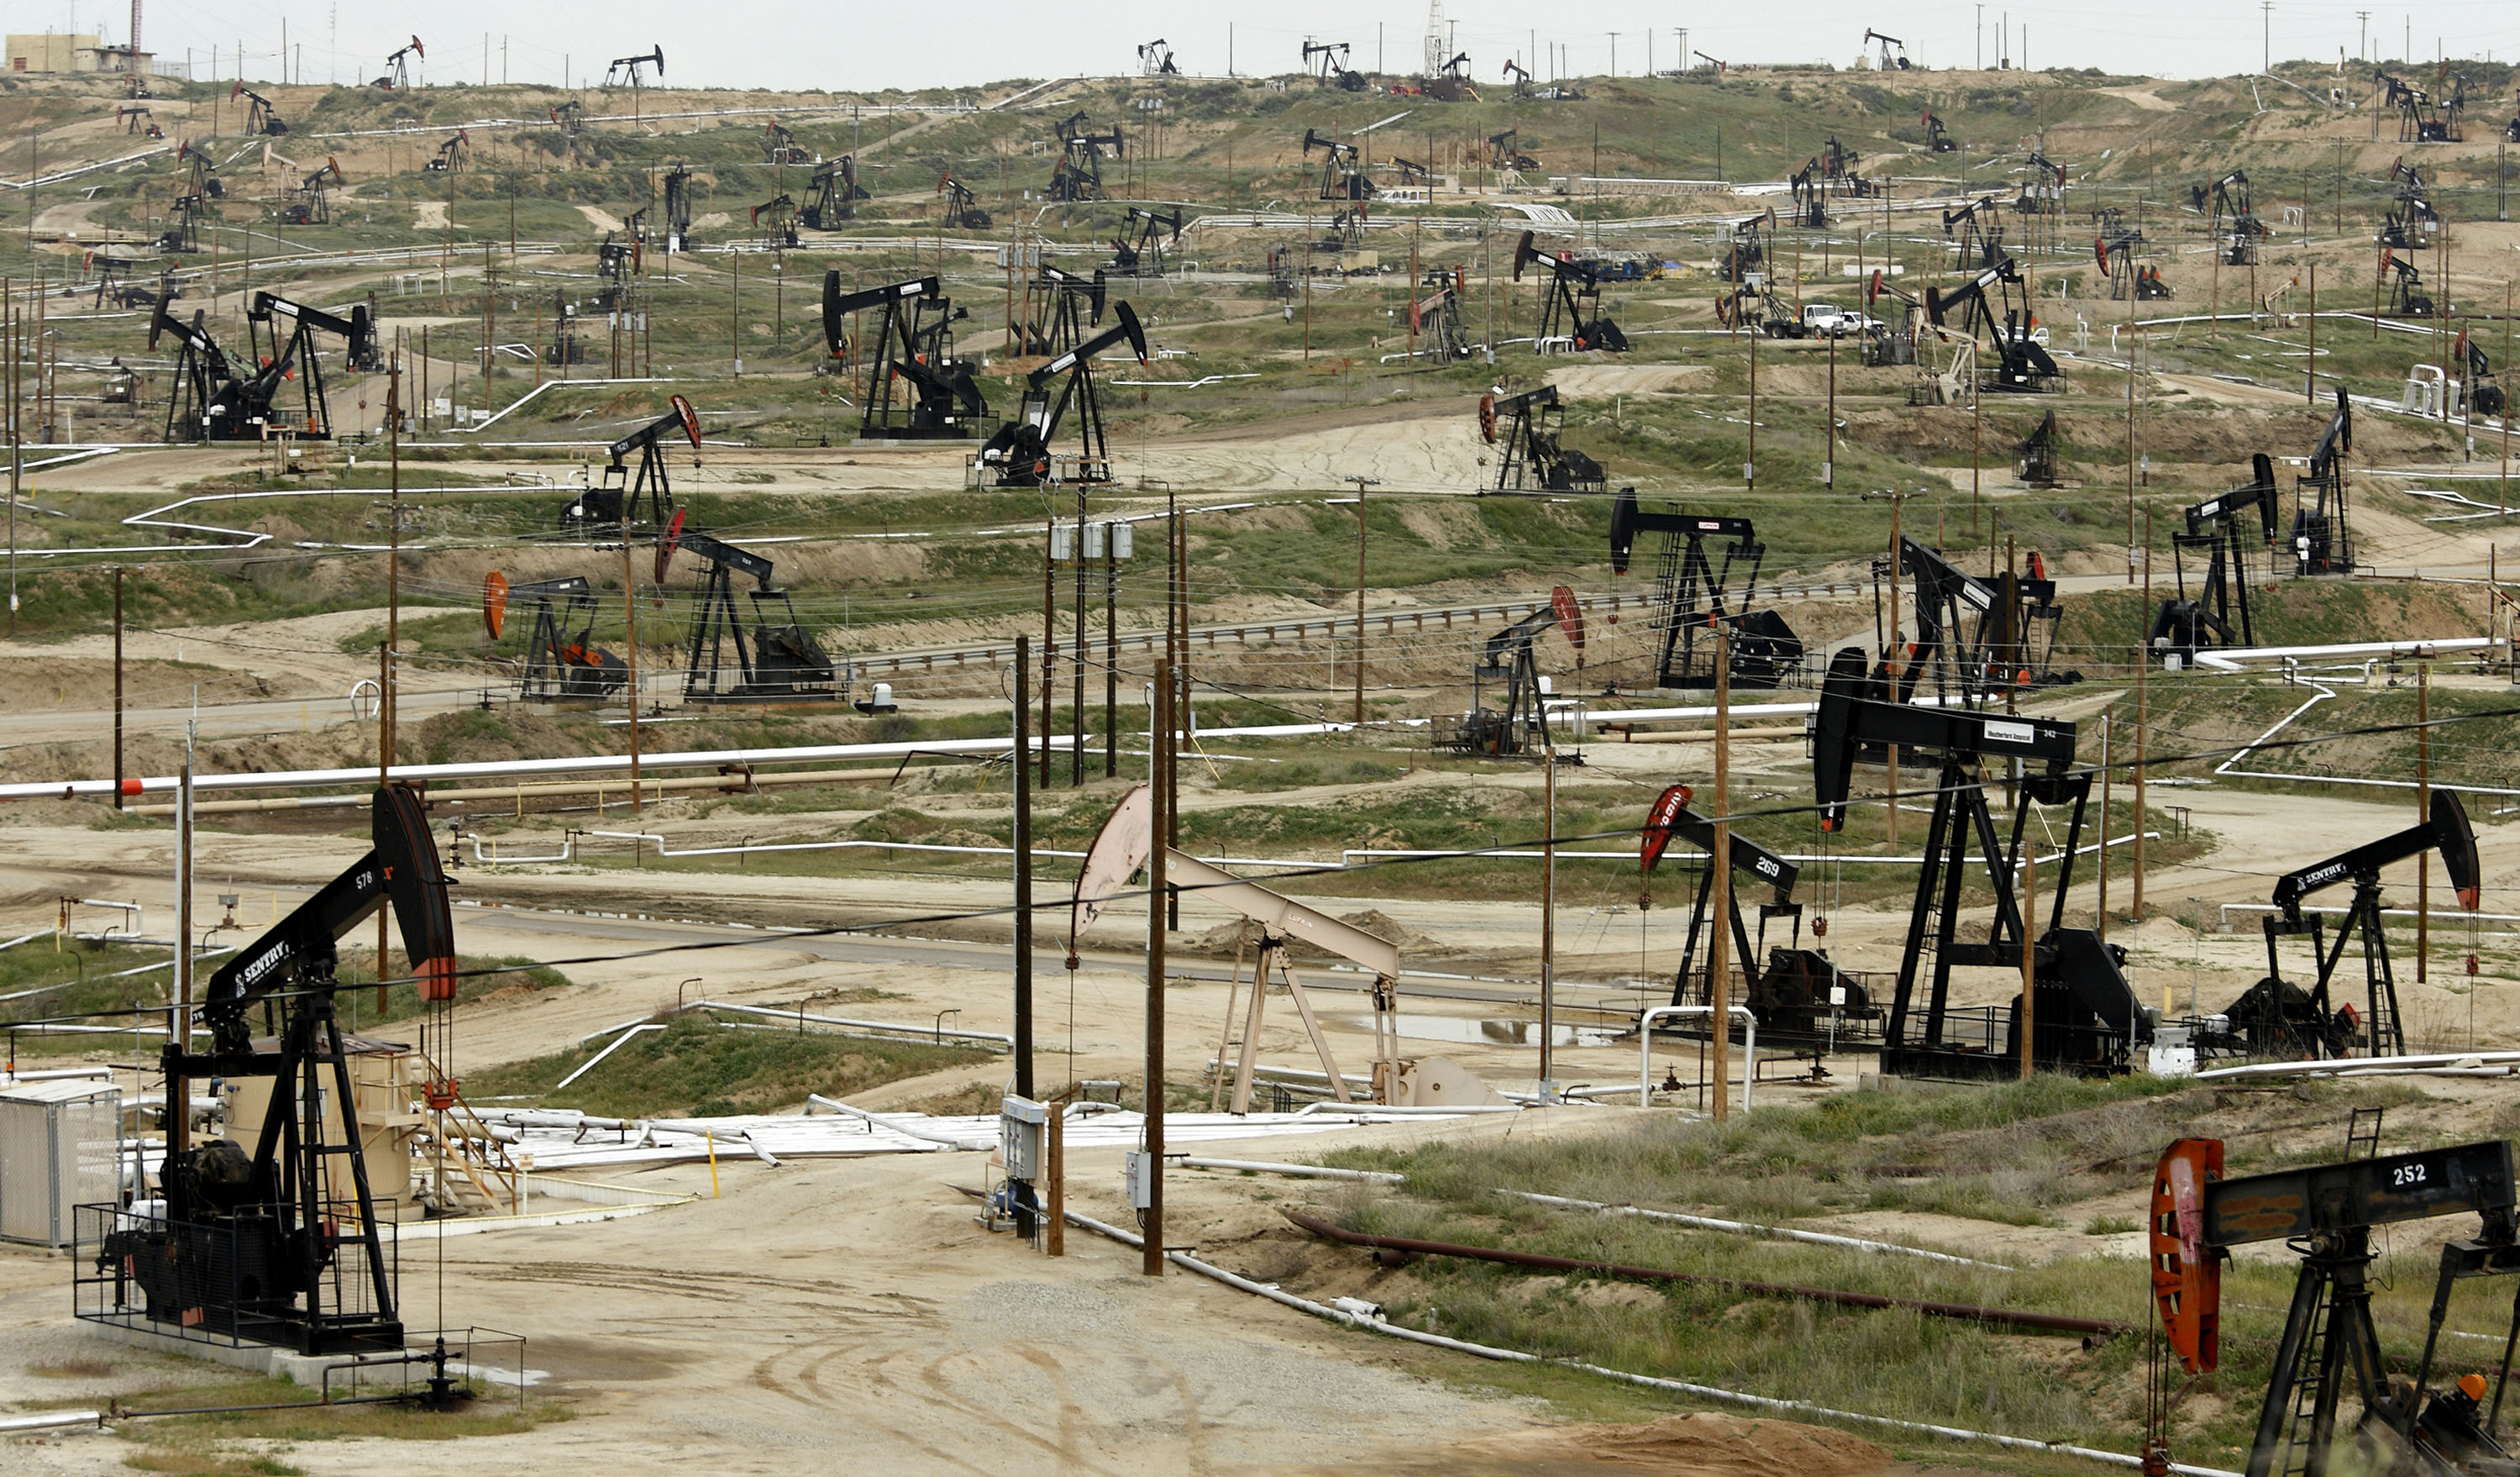 Oil pumps stand at the Chevron Corp. Kern River oil field in Bakersfield, Calif.